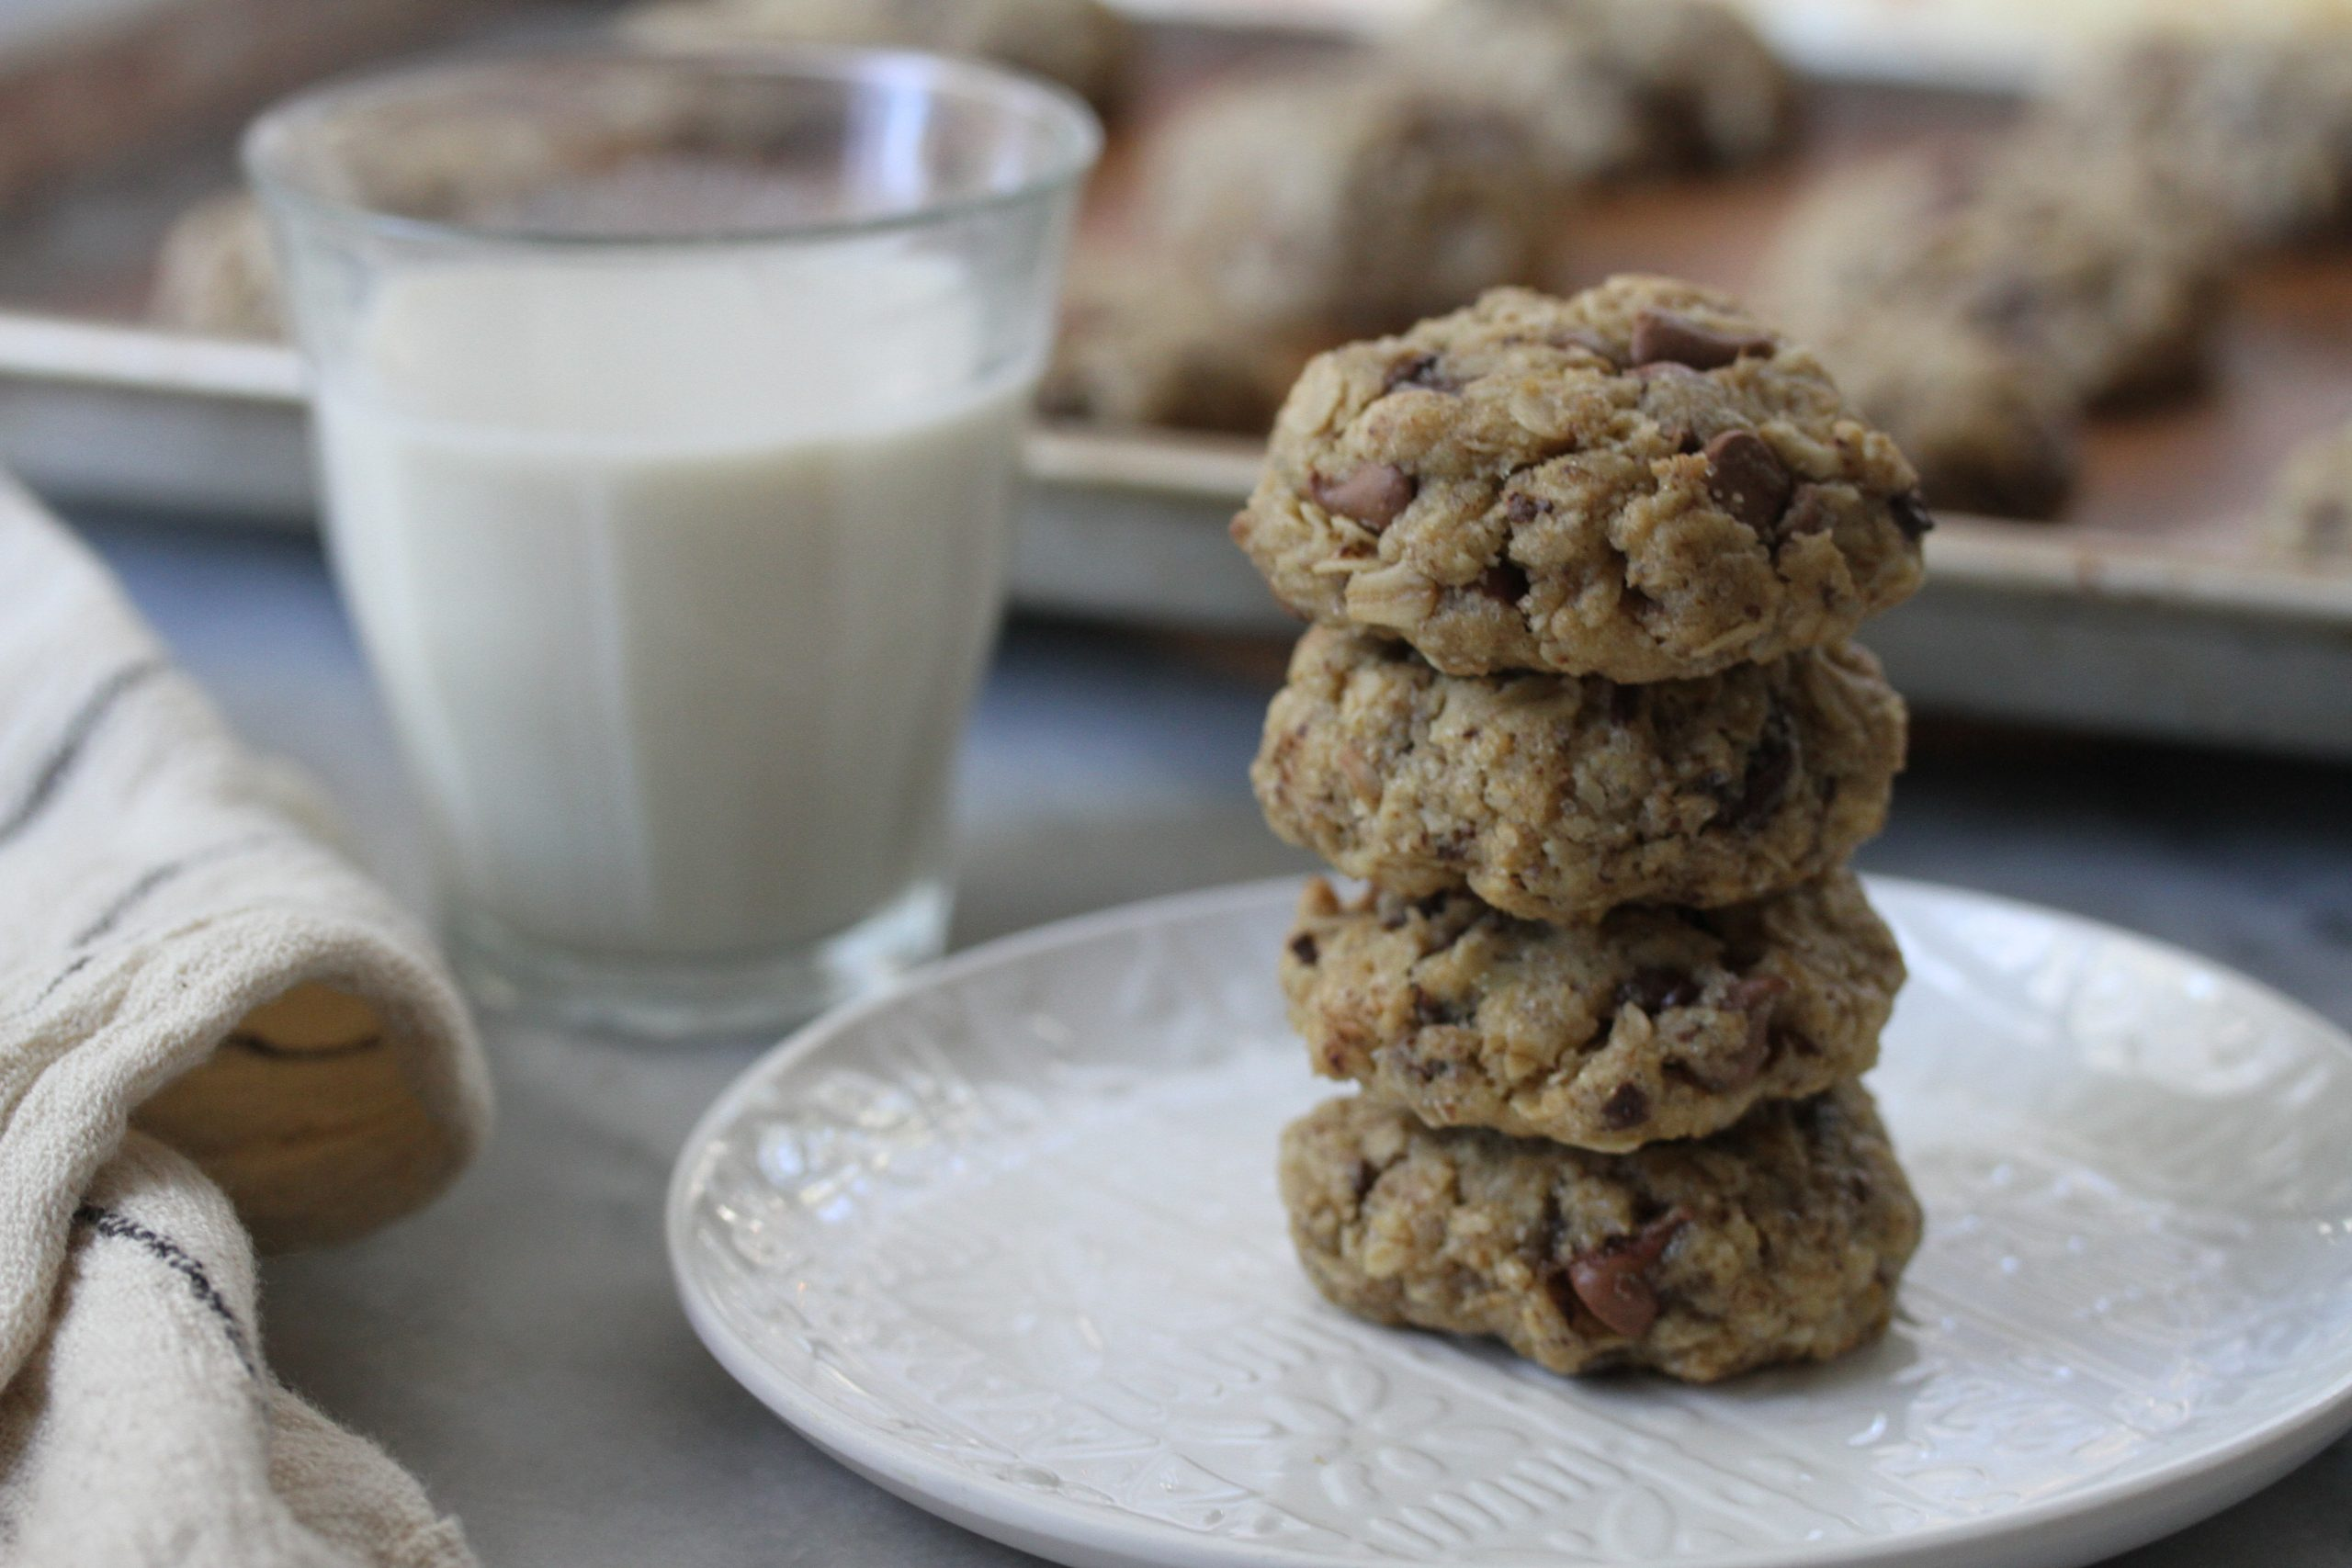 vegan oatmeal chocolate chip cookies and oat milk